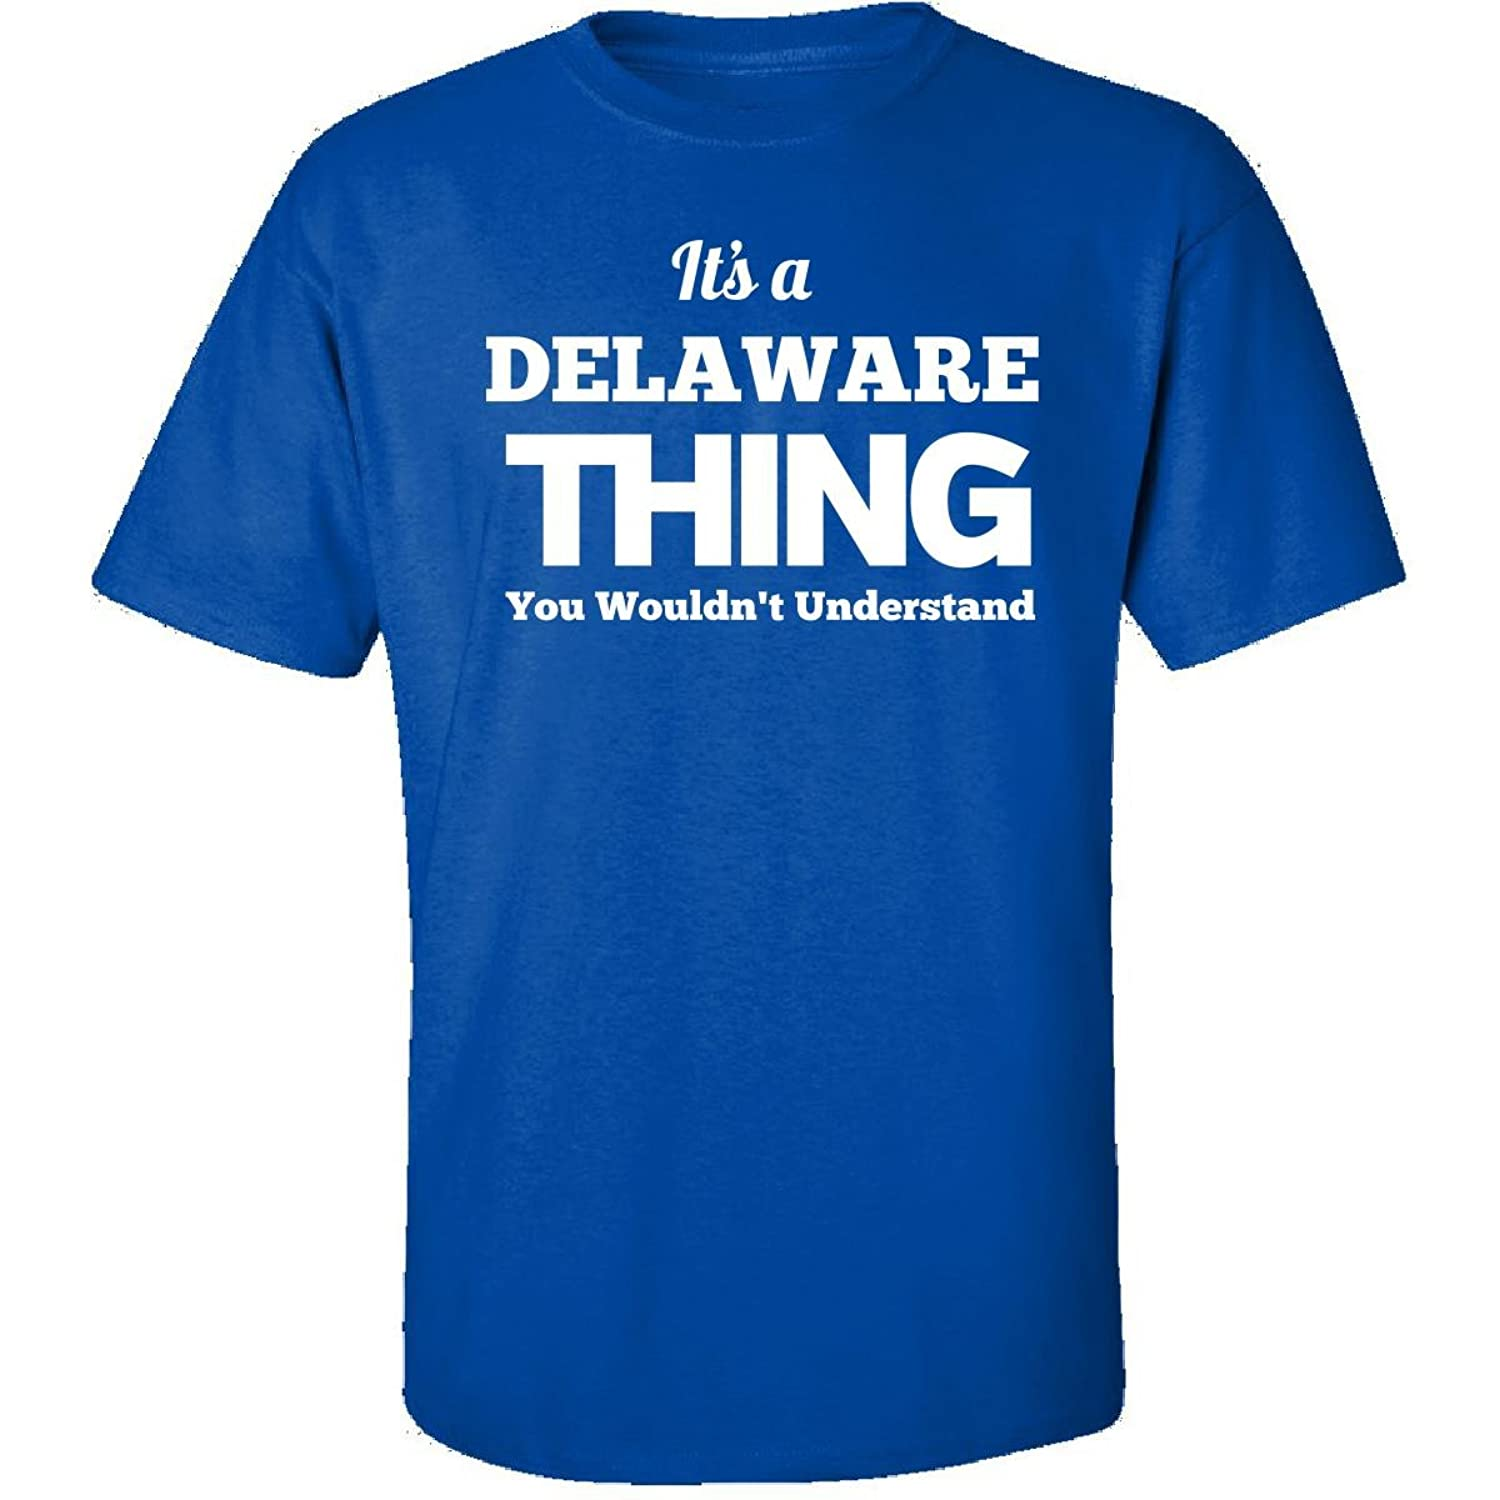 Its A Delaware Thing You Wouldnt Understand - Adult Shirt